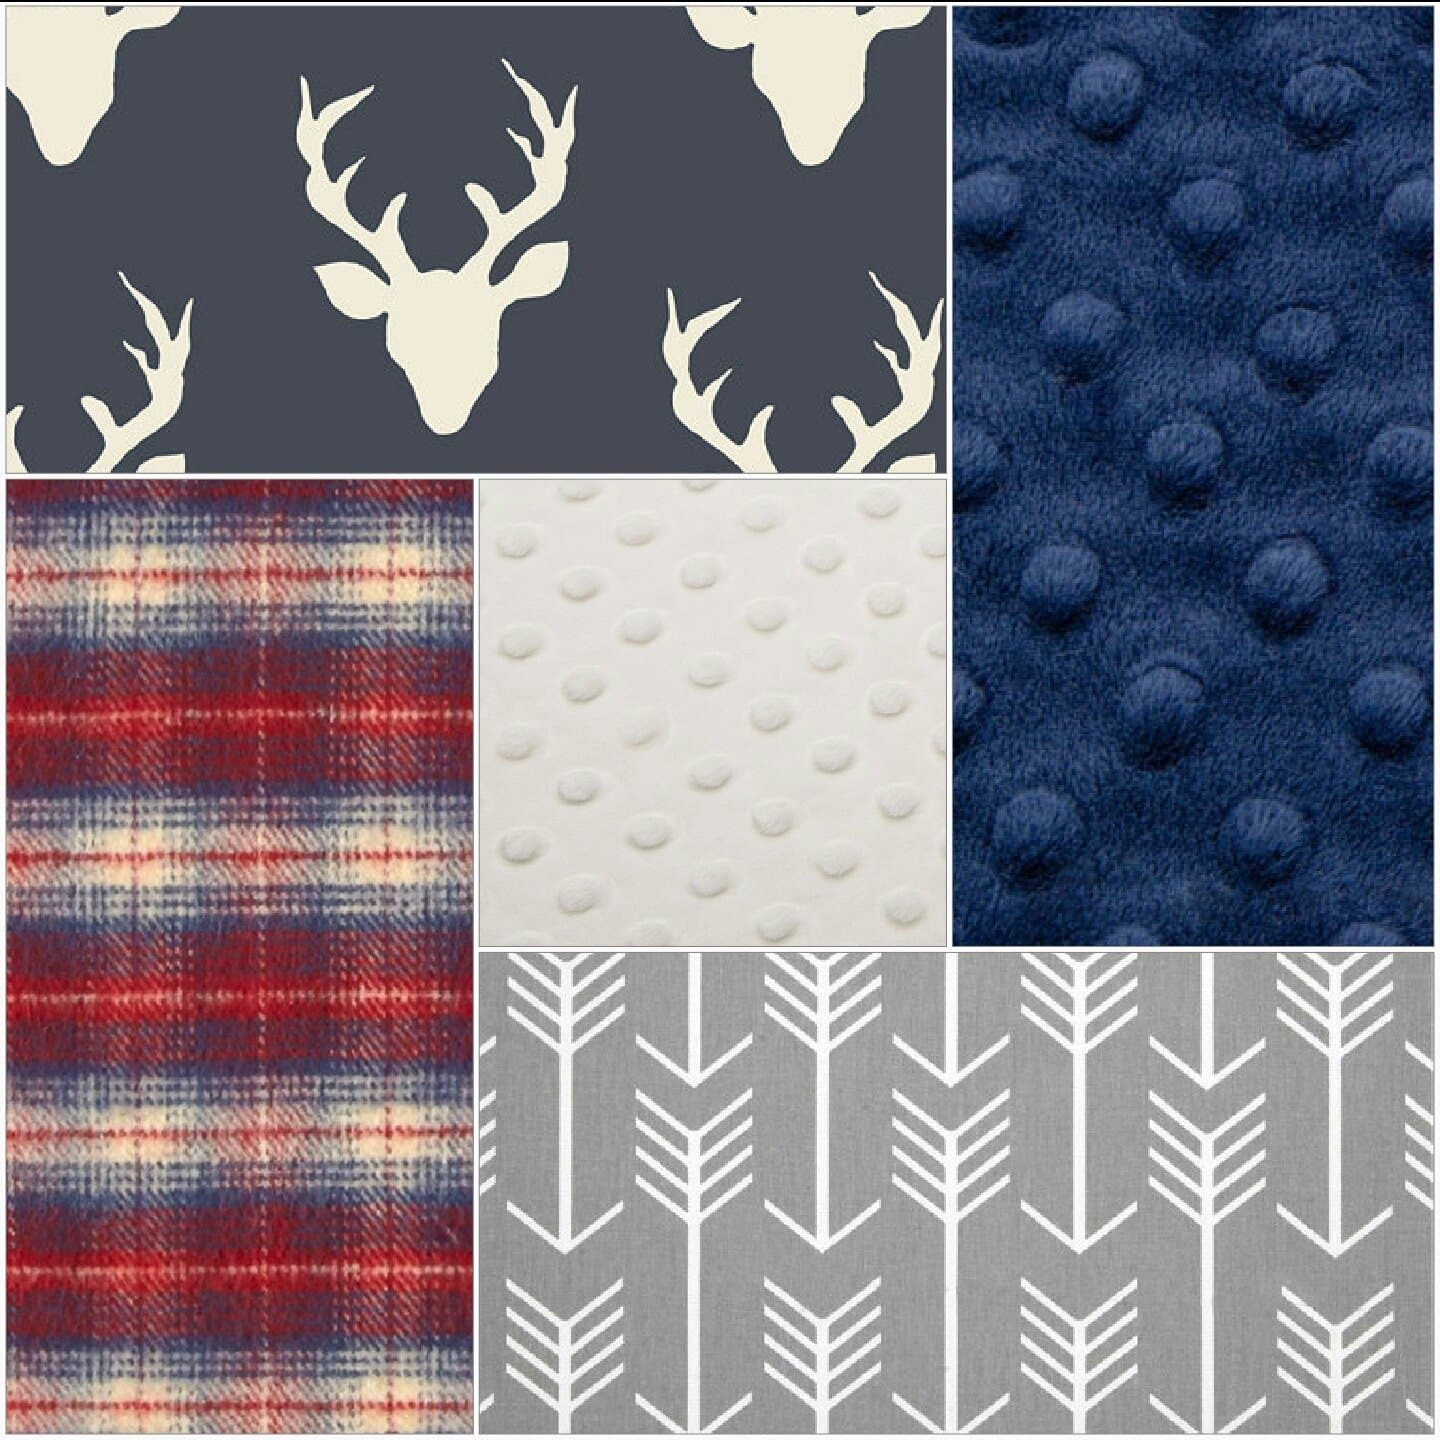 Deer Baby Blanket - Navy Buck, Red Navy Plaid, Gray Arrow, Ivory Minky, and Navy Minky Patchwork Baby Blanket